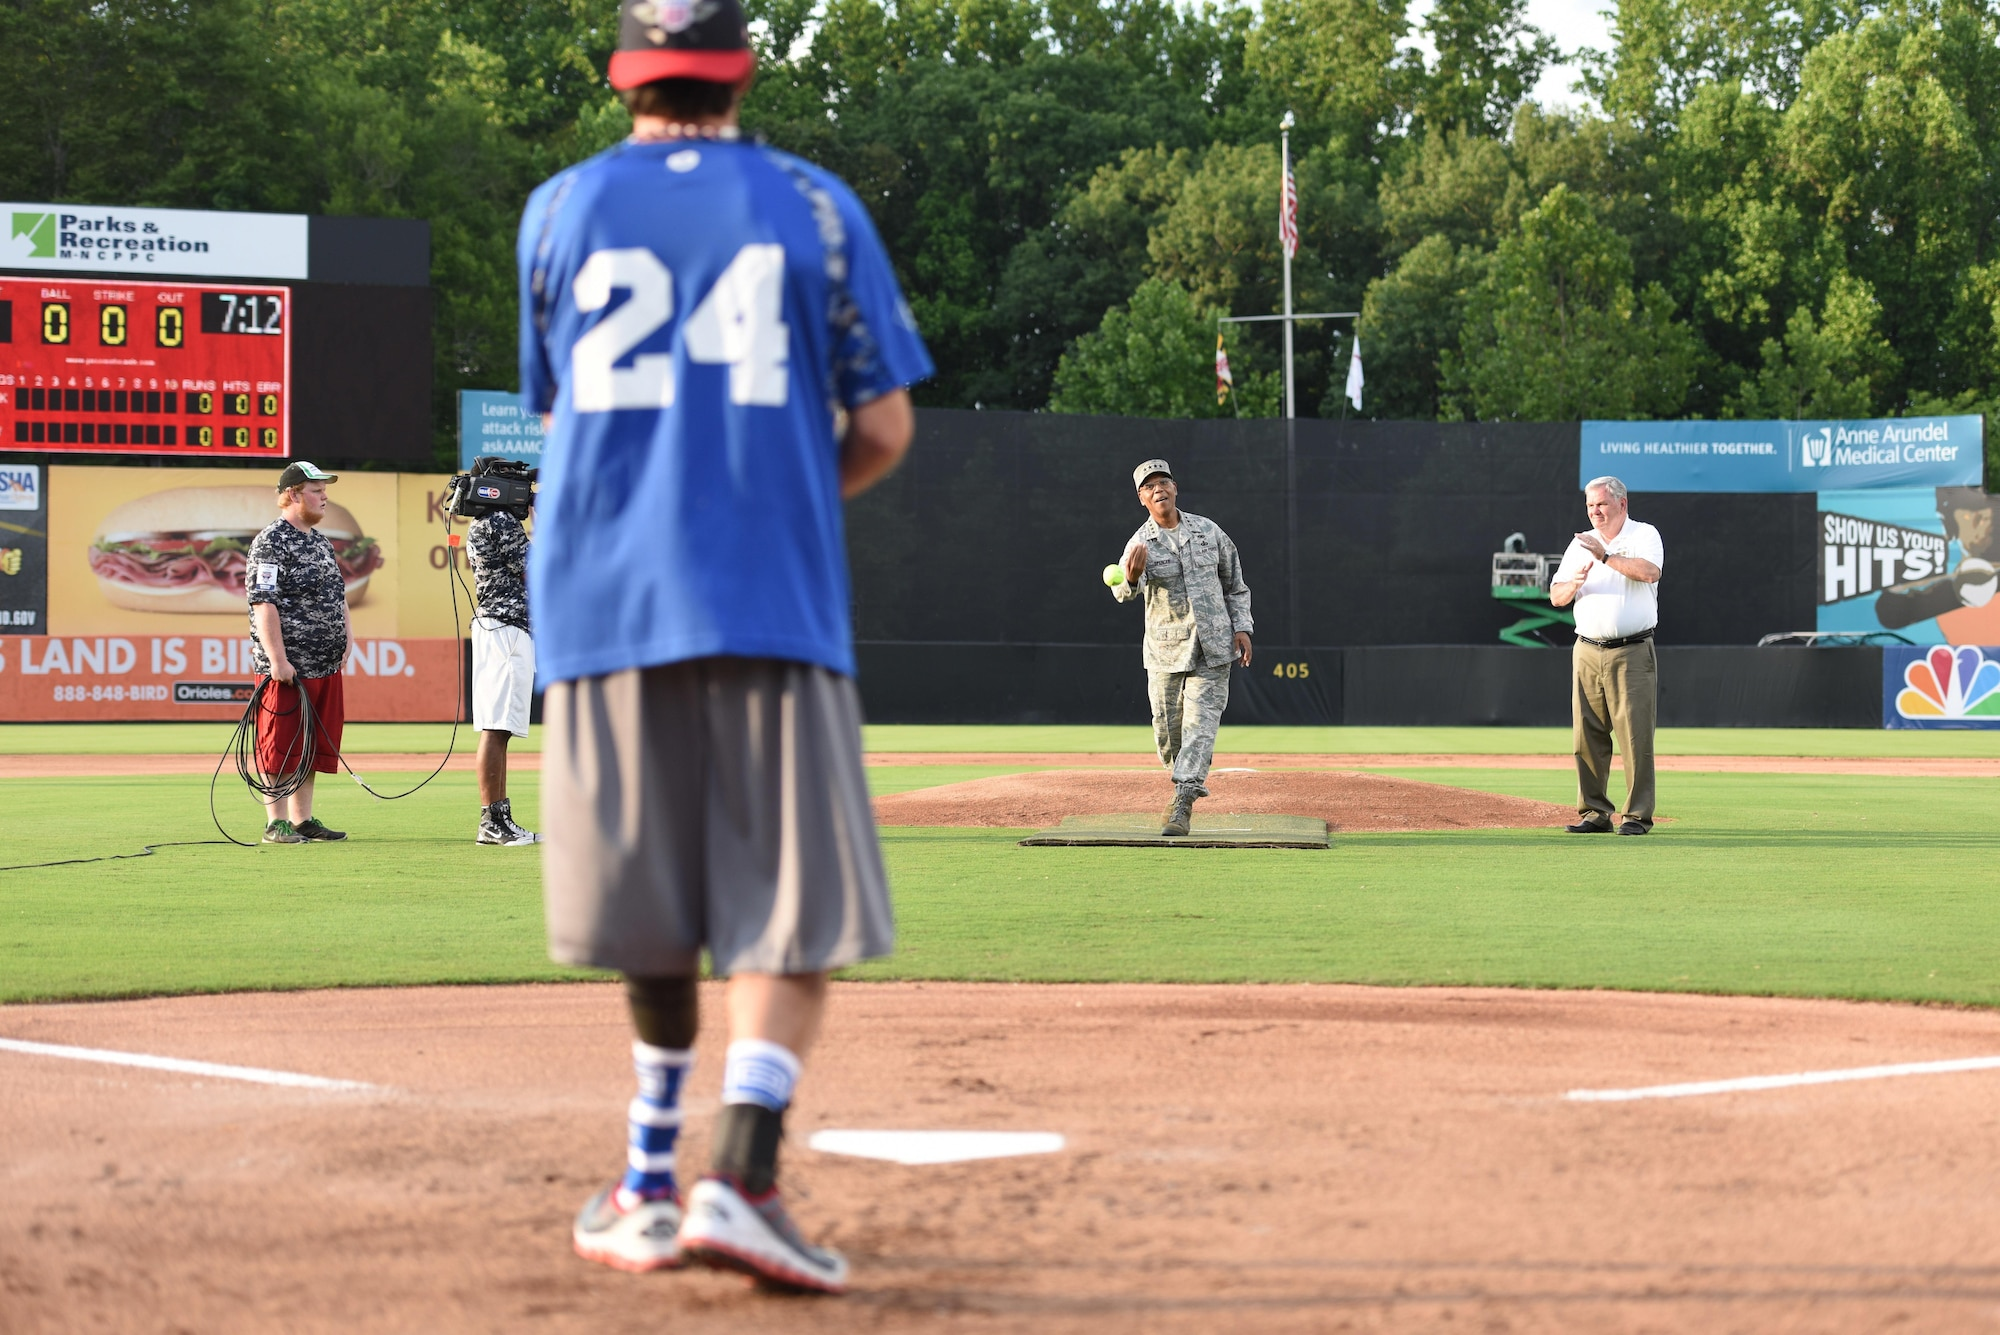 Air Force Vice Chief of Staff Gen. Larry O. Spencer throws the first pitch of the 3rd annual Amputee Warrior Softball Classic June 6, 2015, at Prince George's Stadium in Bowie, Md. (U.S. Air Force photos/Staff Sgt. Carlin Leslie)